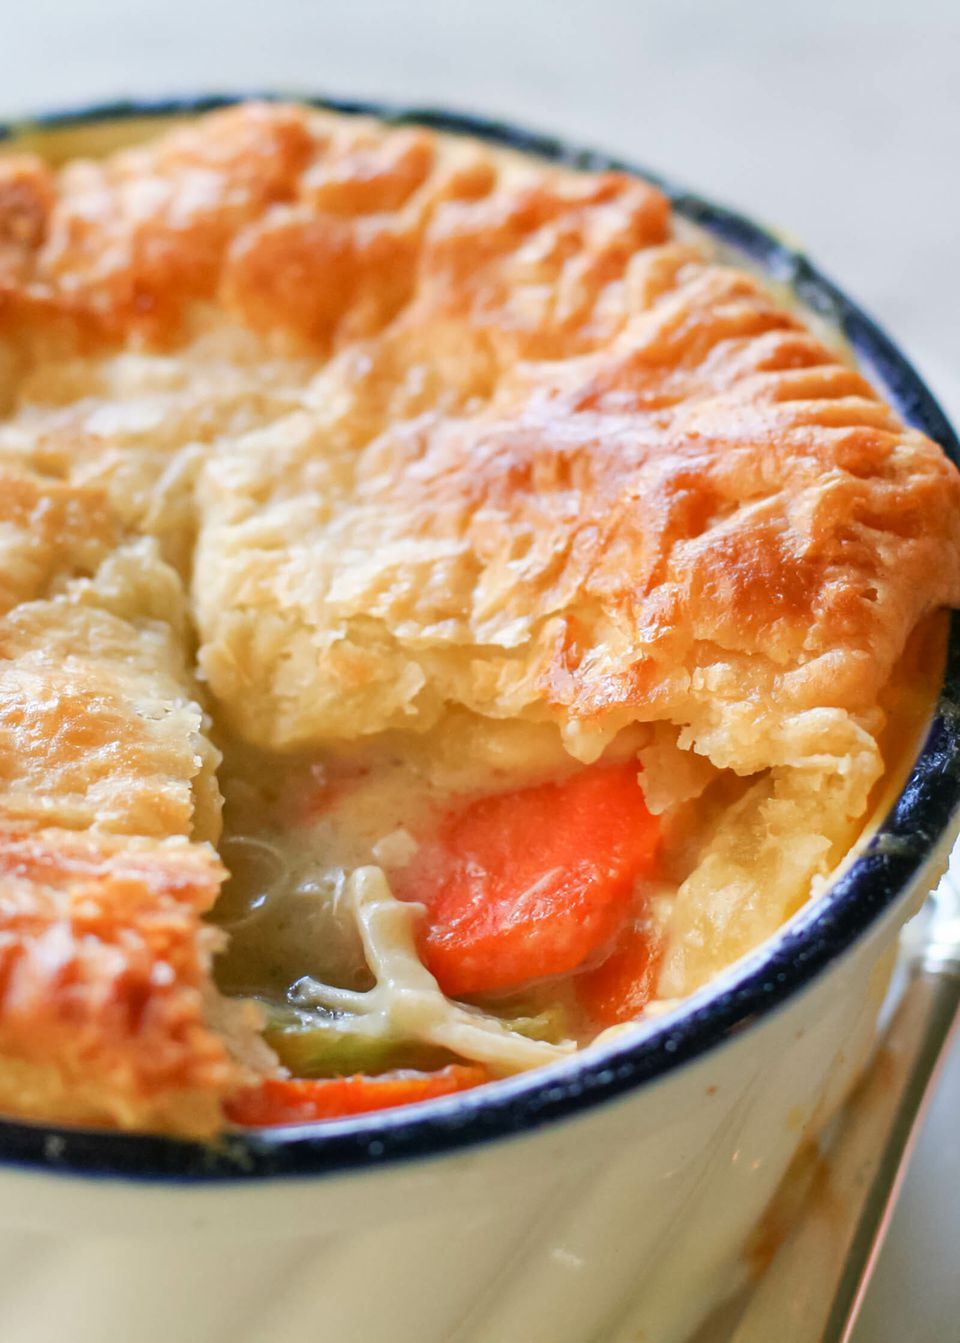 A chicken pot pie with a golden crust and creamy filling is in a ramekin.